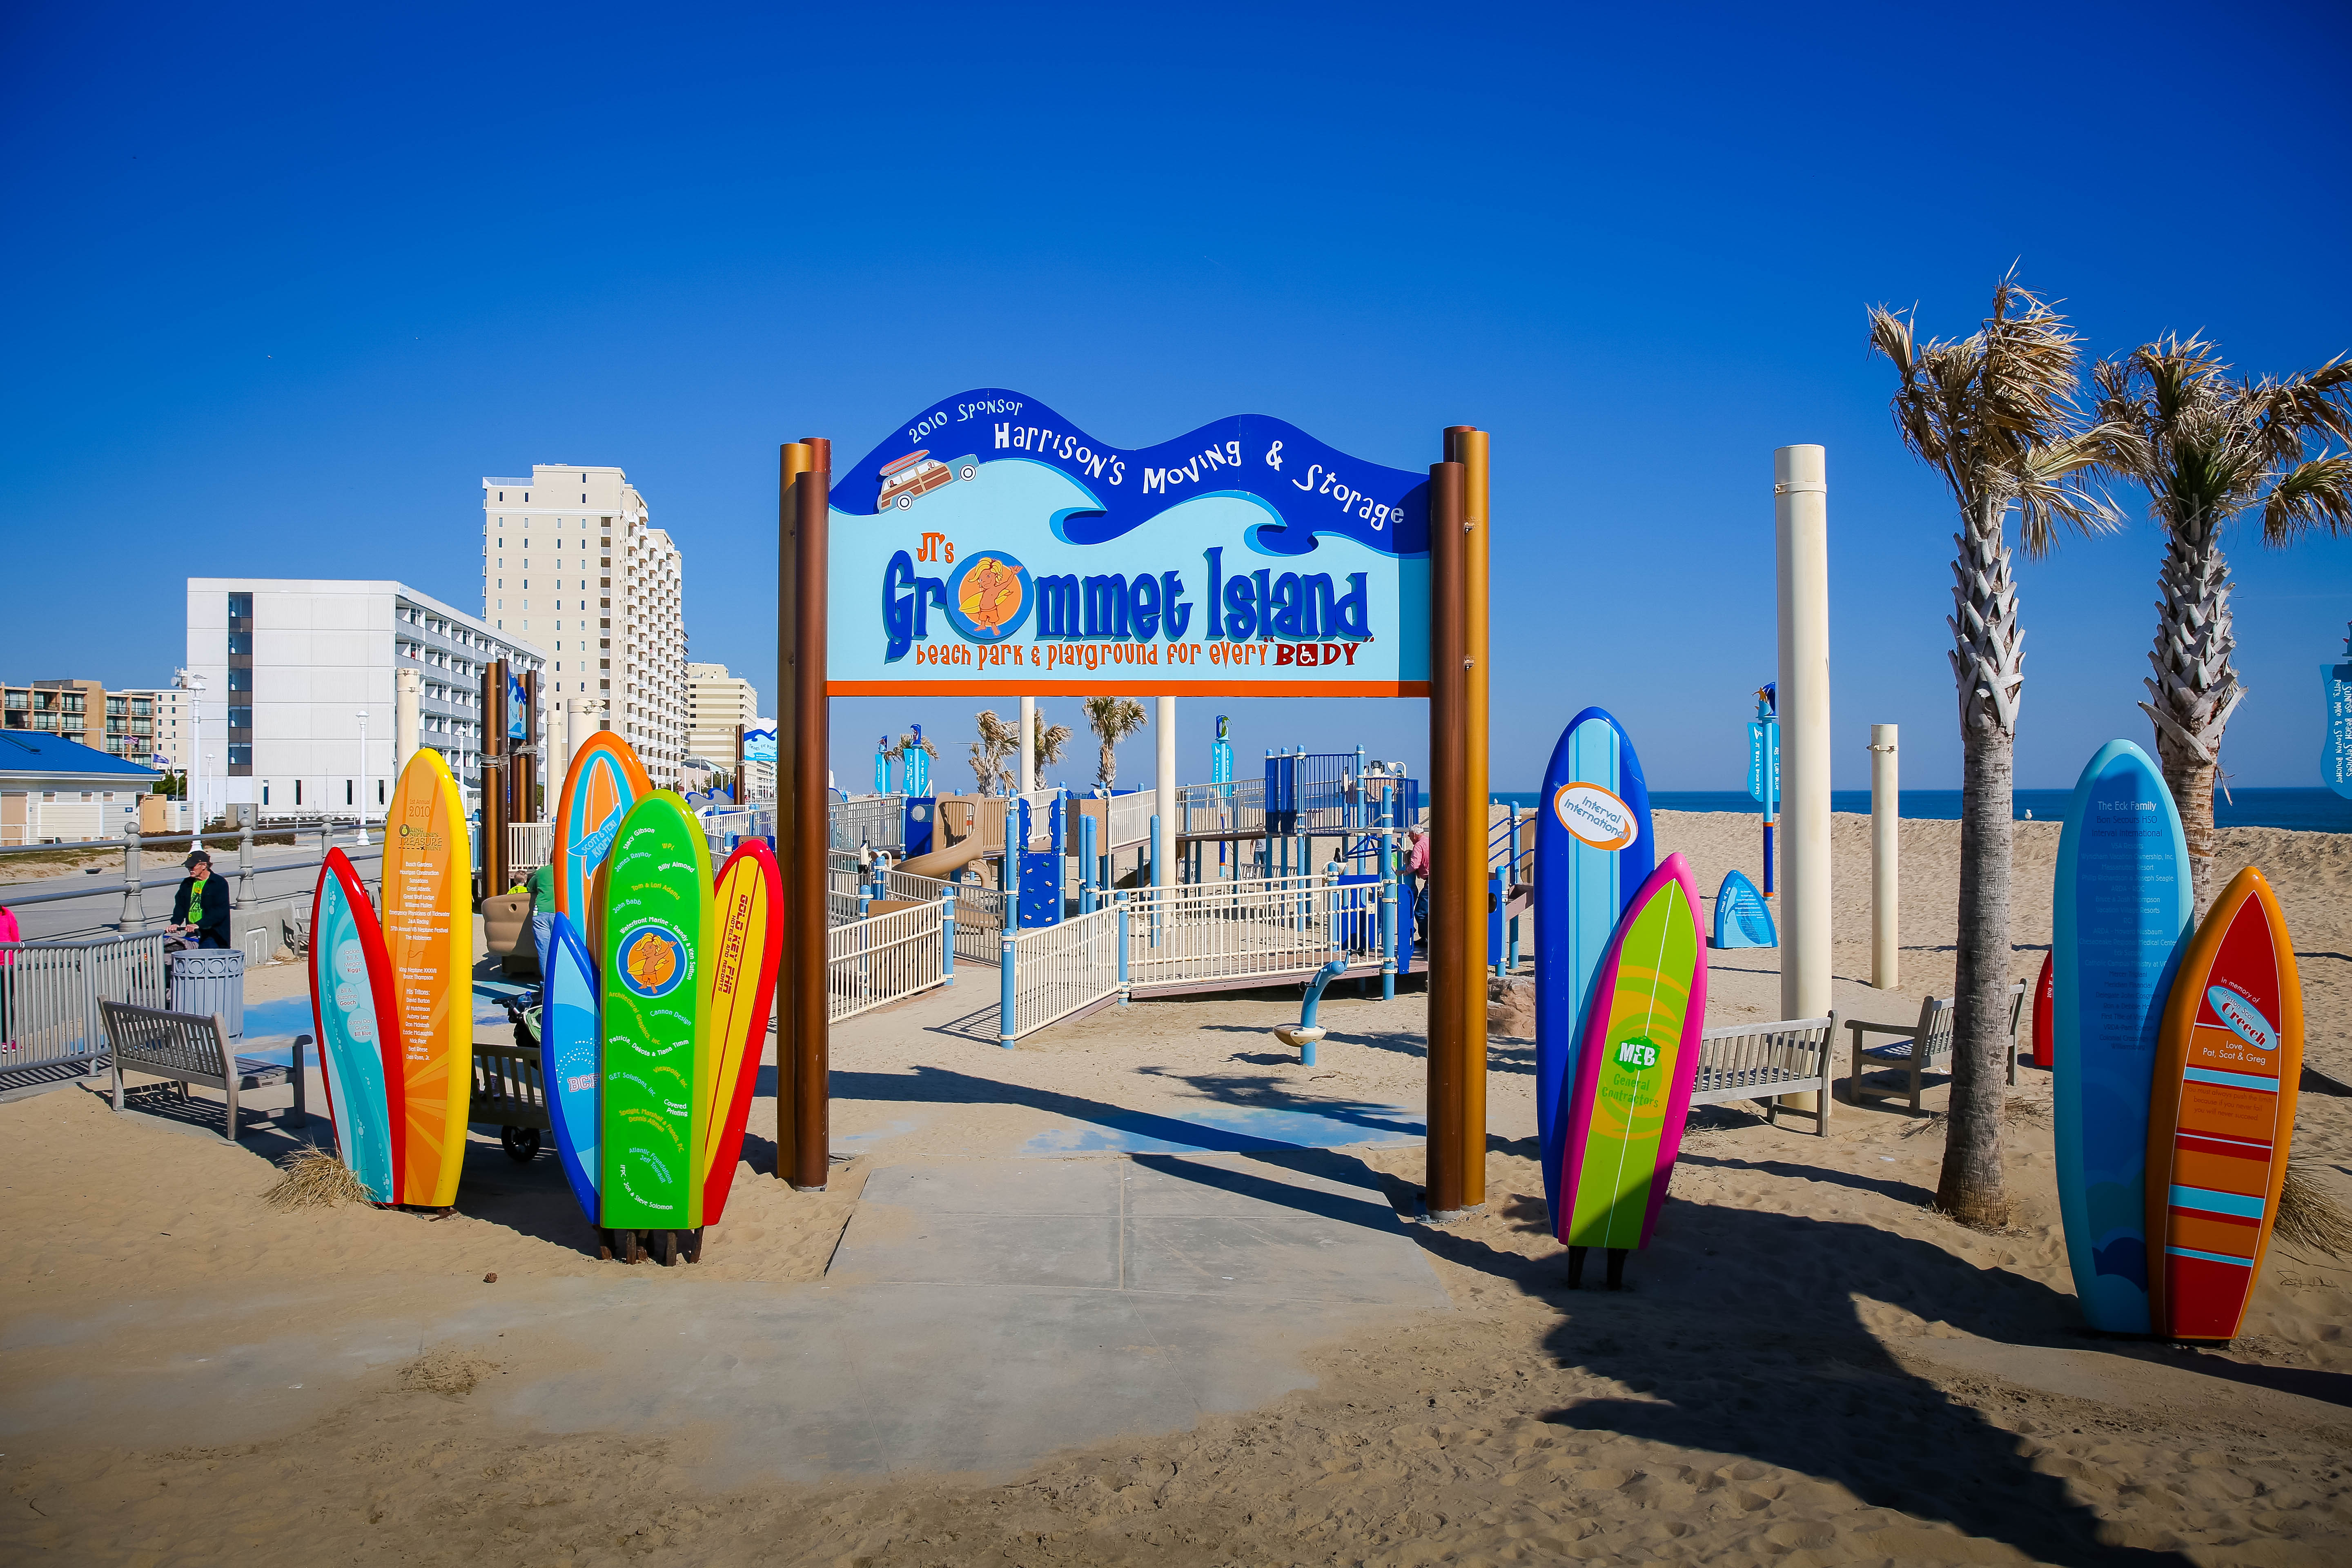 79ce023ca Things to Do With Kids in Virginia Beach | Family-Friendly Fun